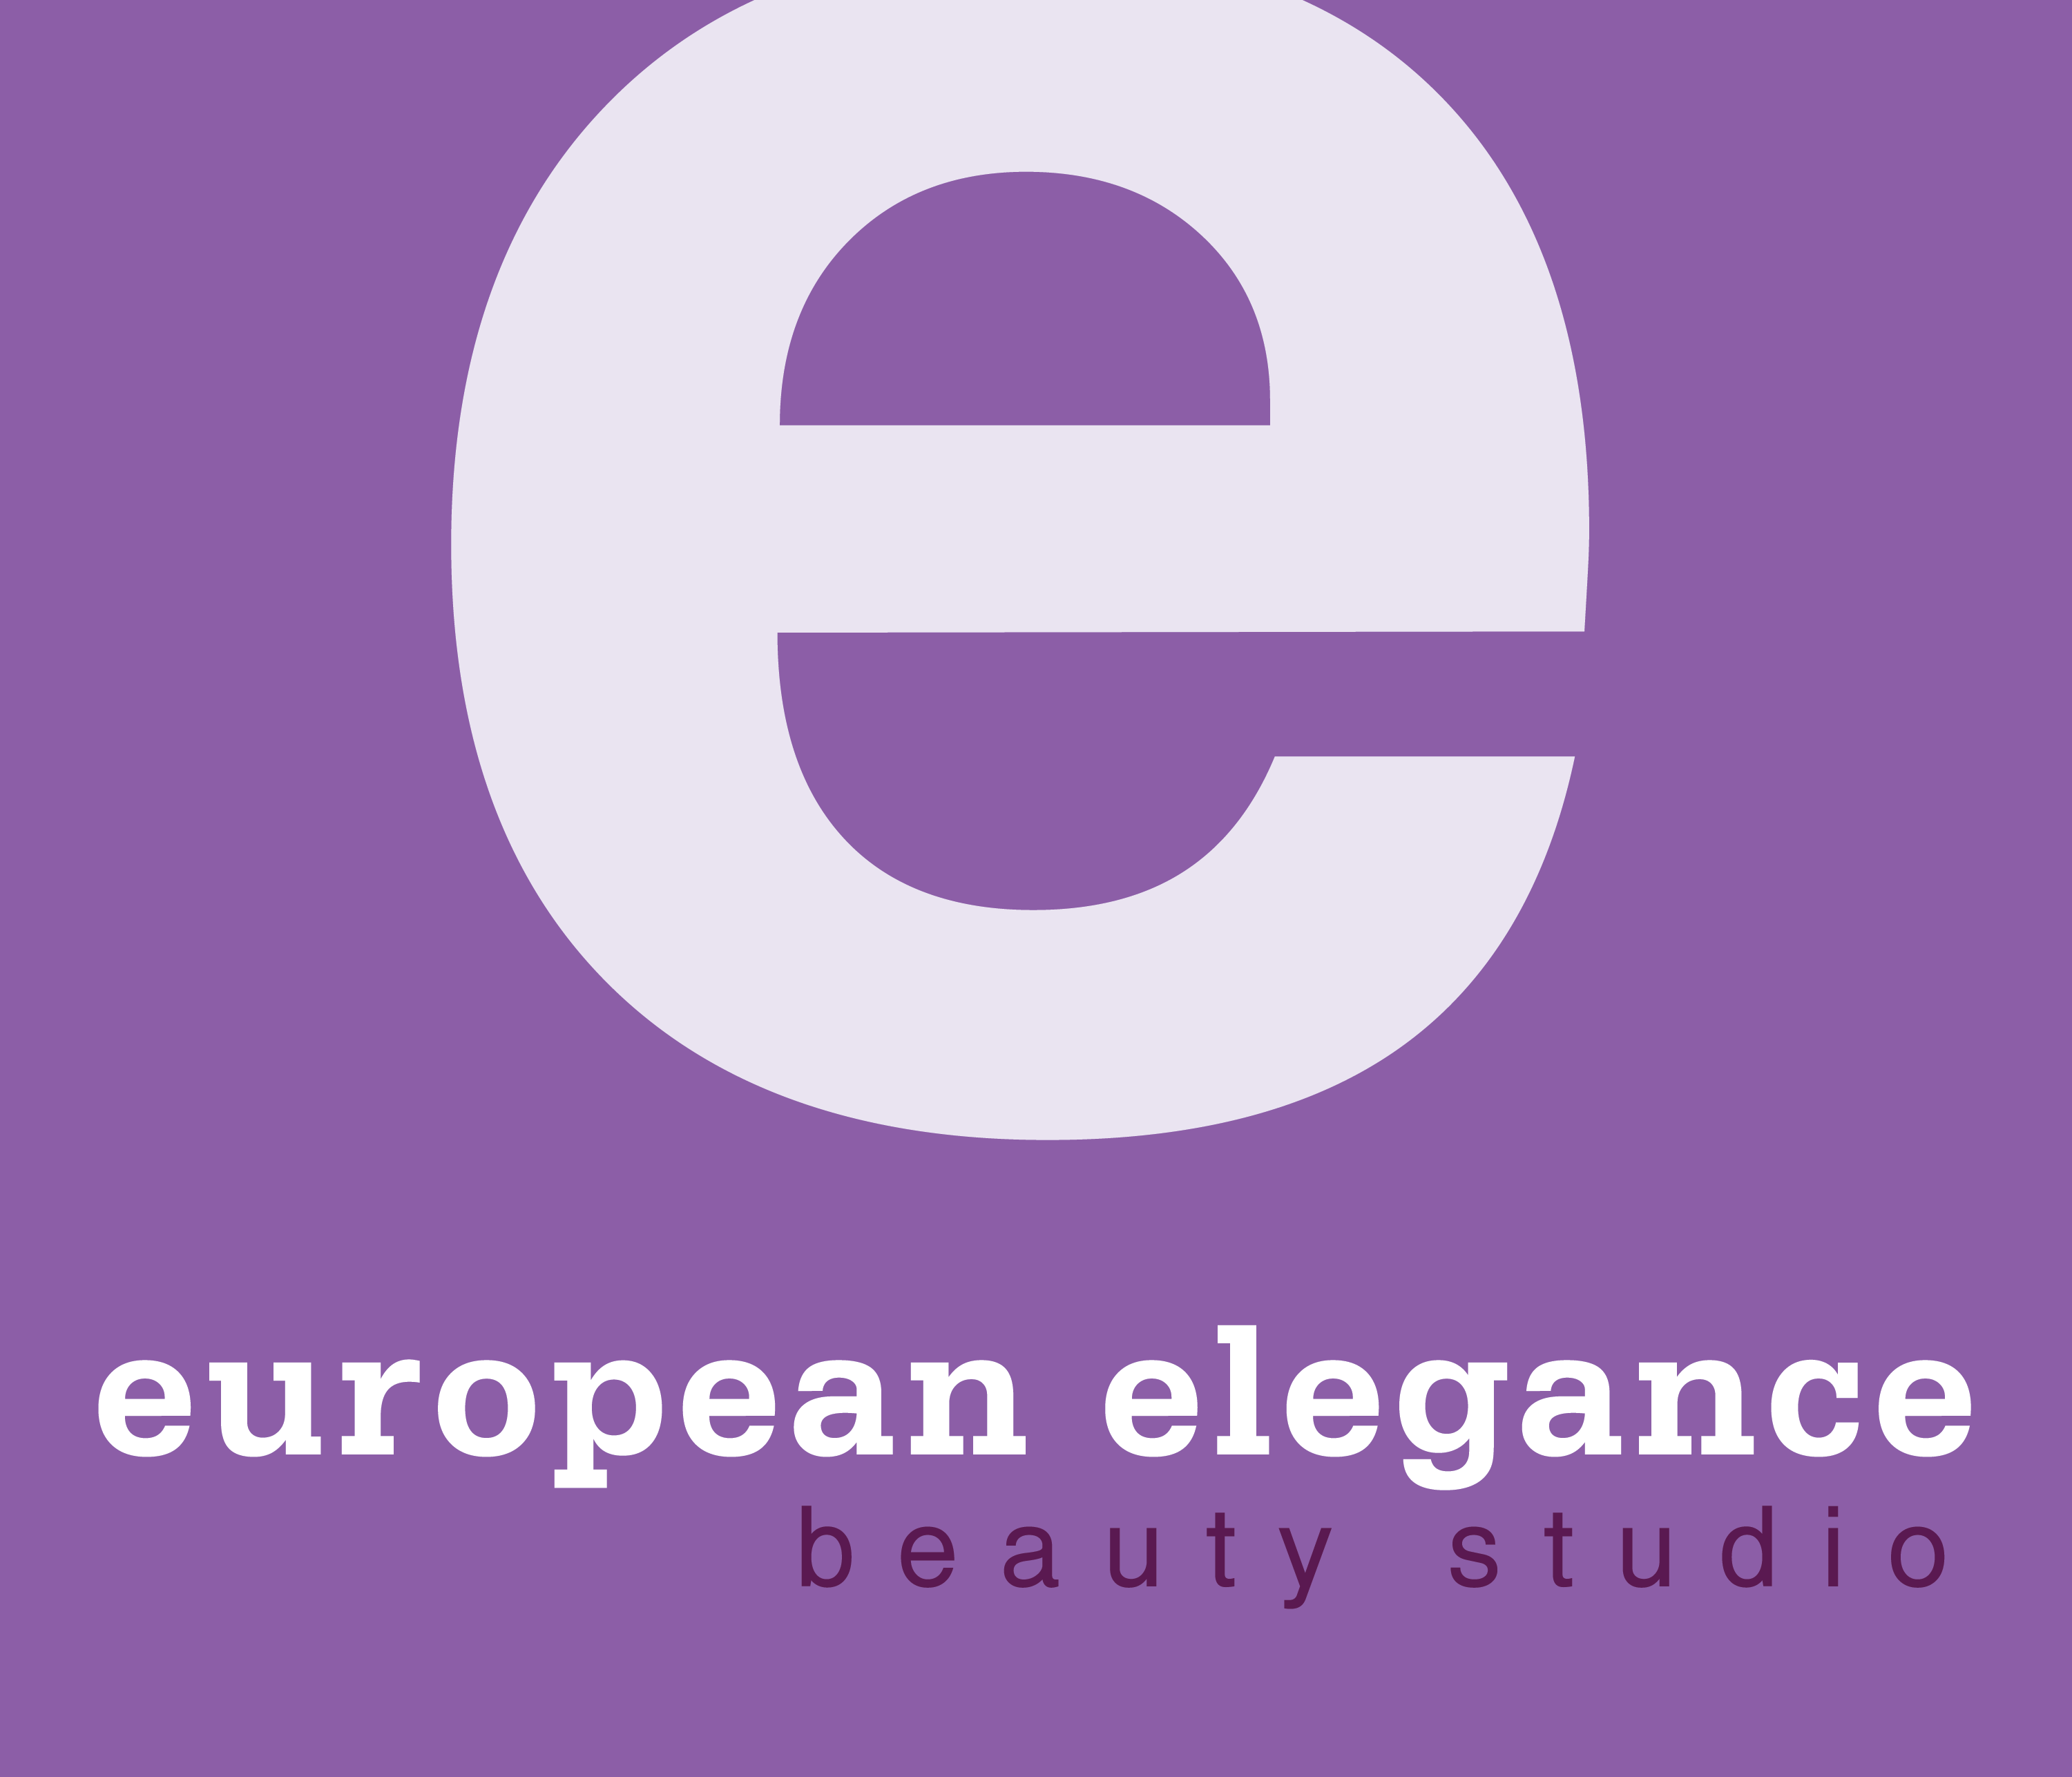 European Elegance Beauty Studio